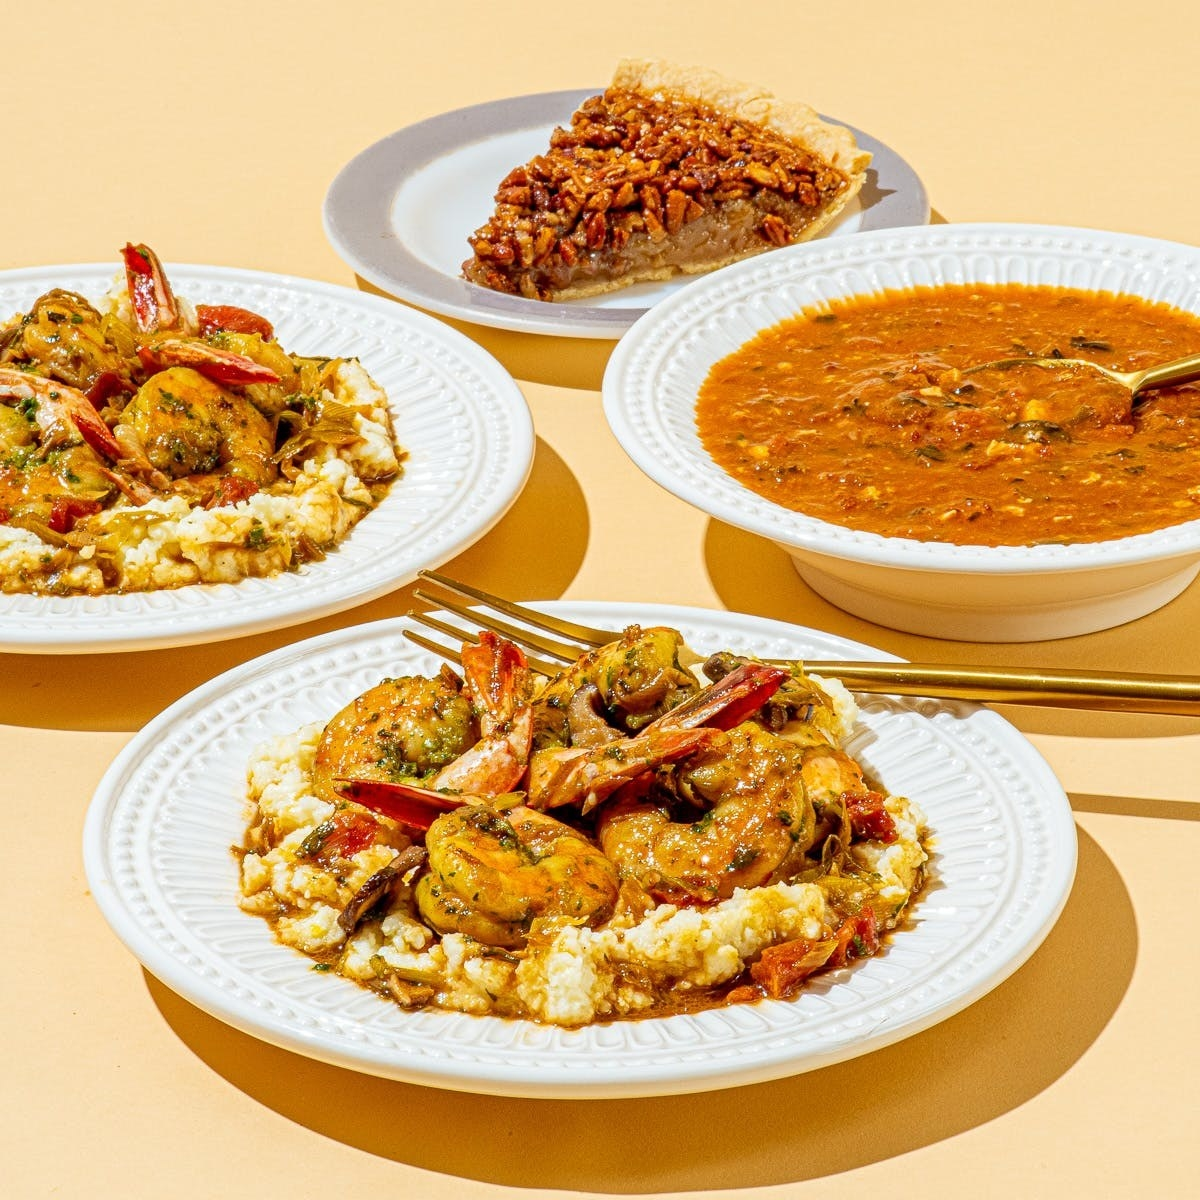 the plates of turtle soup, shrimp and grifts, seafood gumbo, and a pecan pie